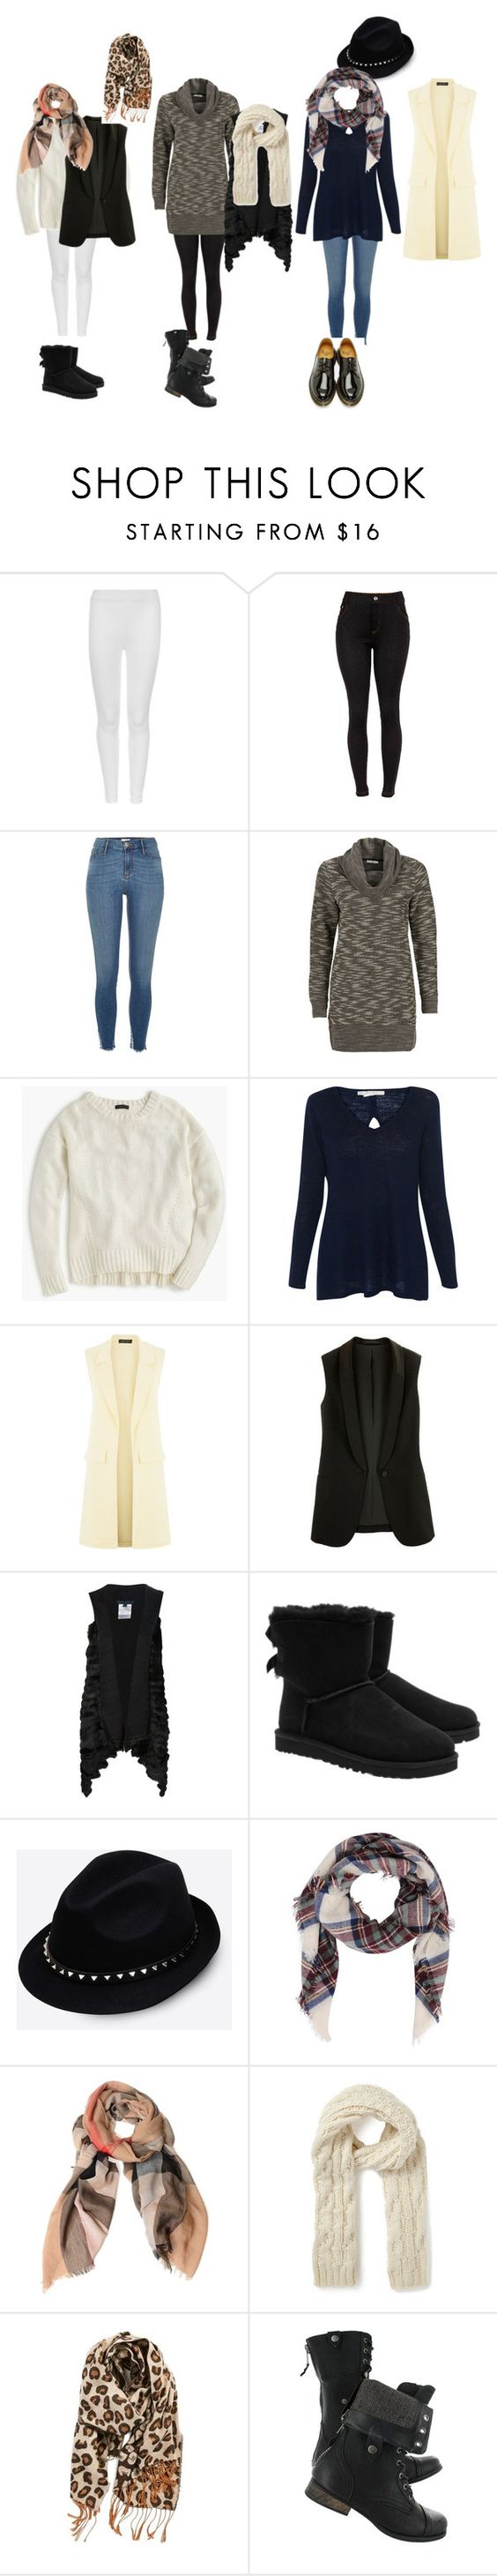 """New York in December"" by gbibbero on Polyvore featuring M&S Collection, River Island, J.Crew, Belford, Jocelyn, UGG Australia, Valentino, Burberry, Warehouse and BP."